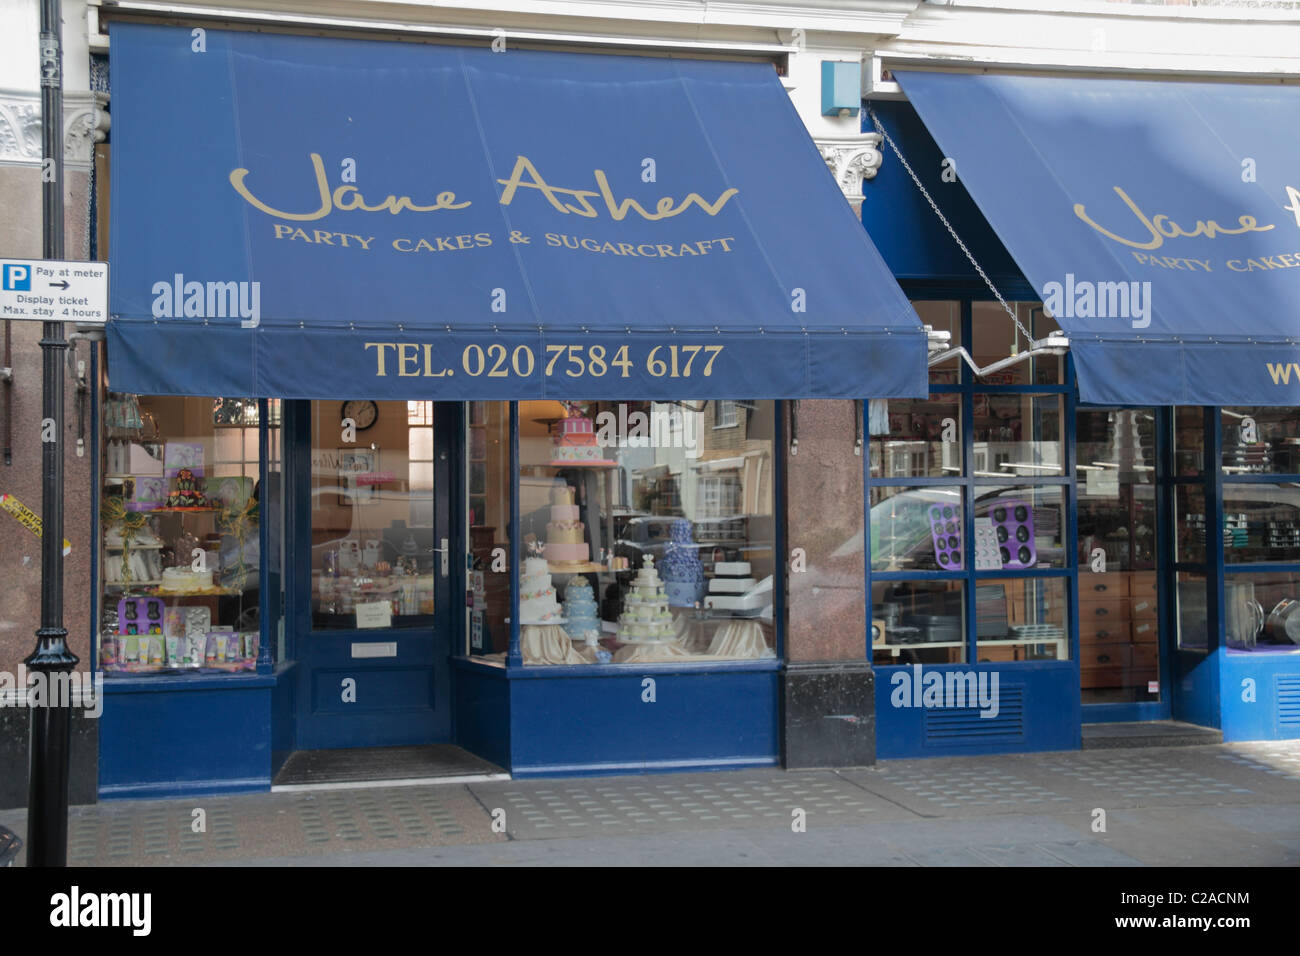 The Jane Asher Party Cakes And Sugarcraft Shop On Chelsea